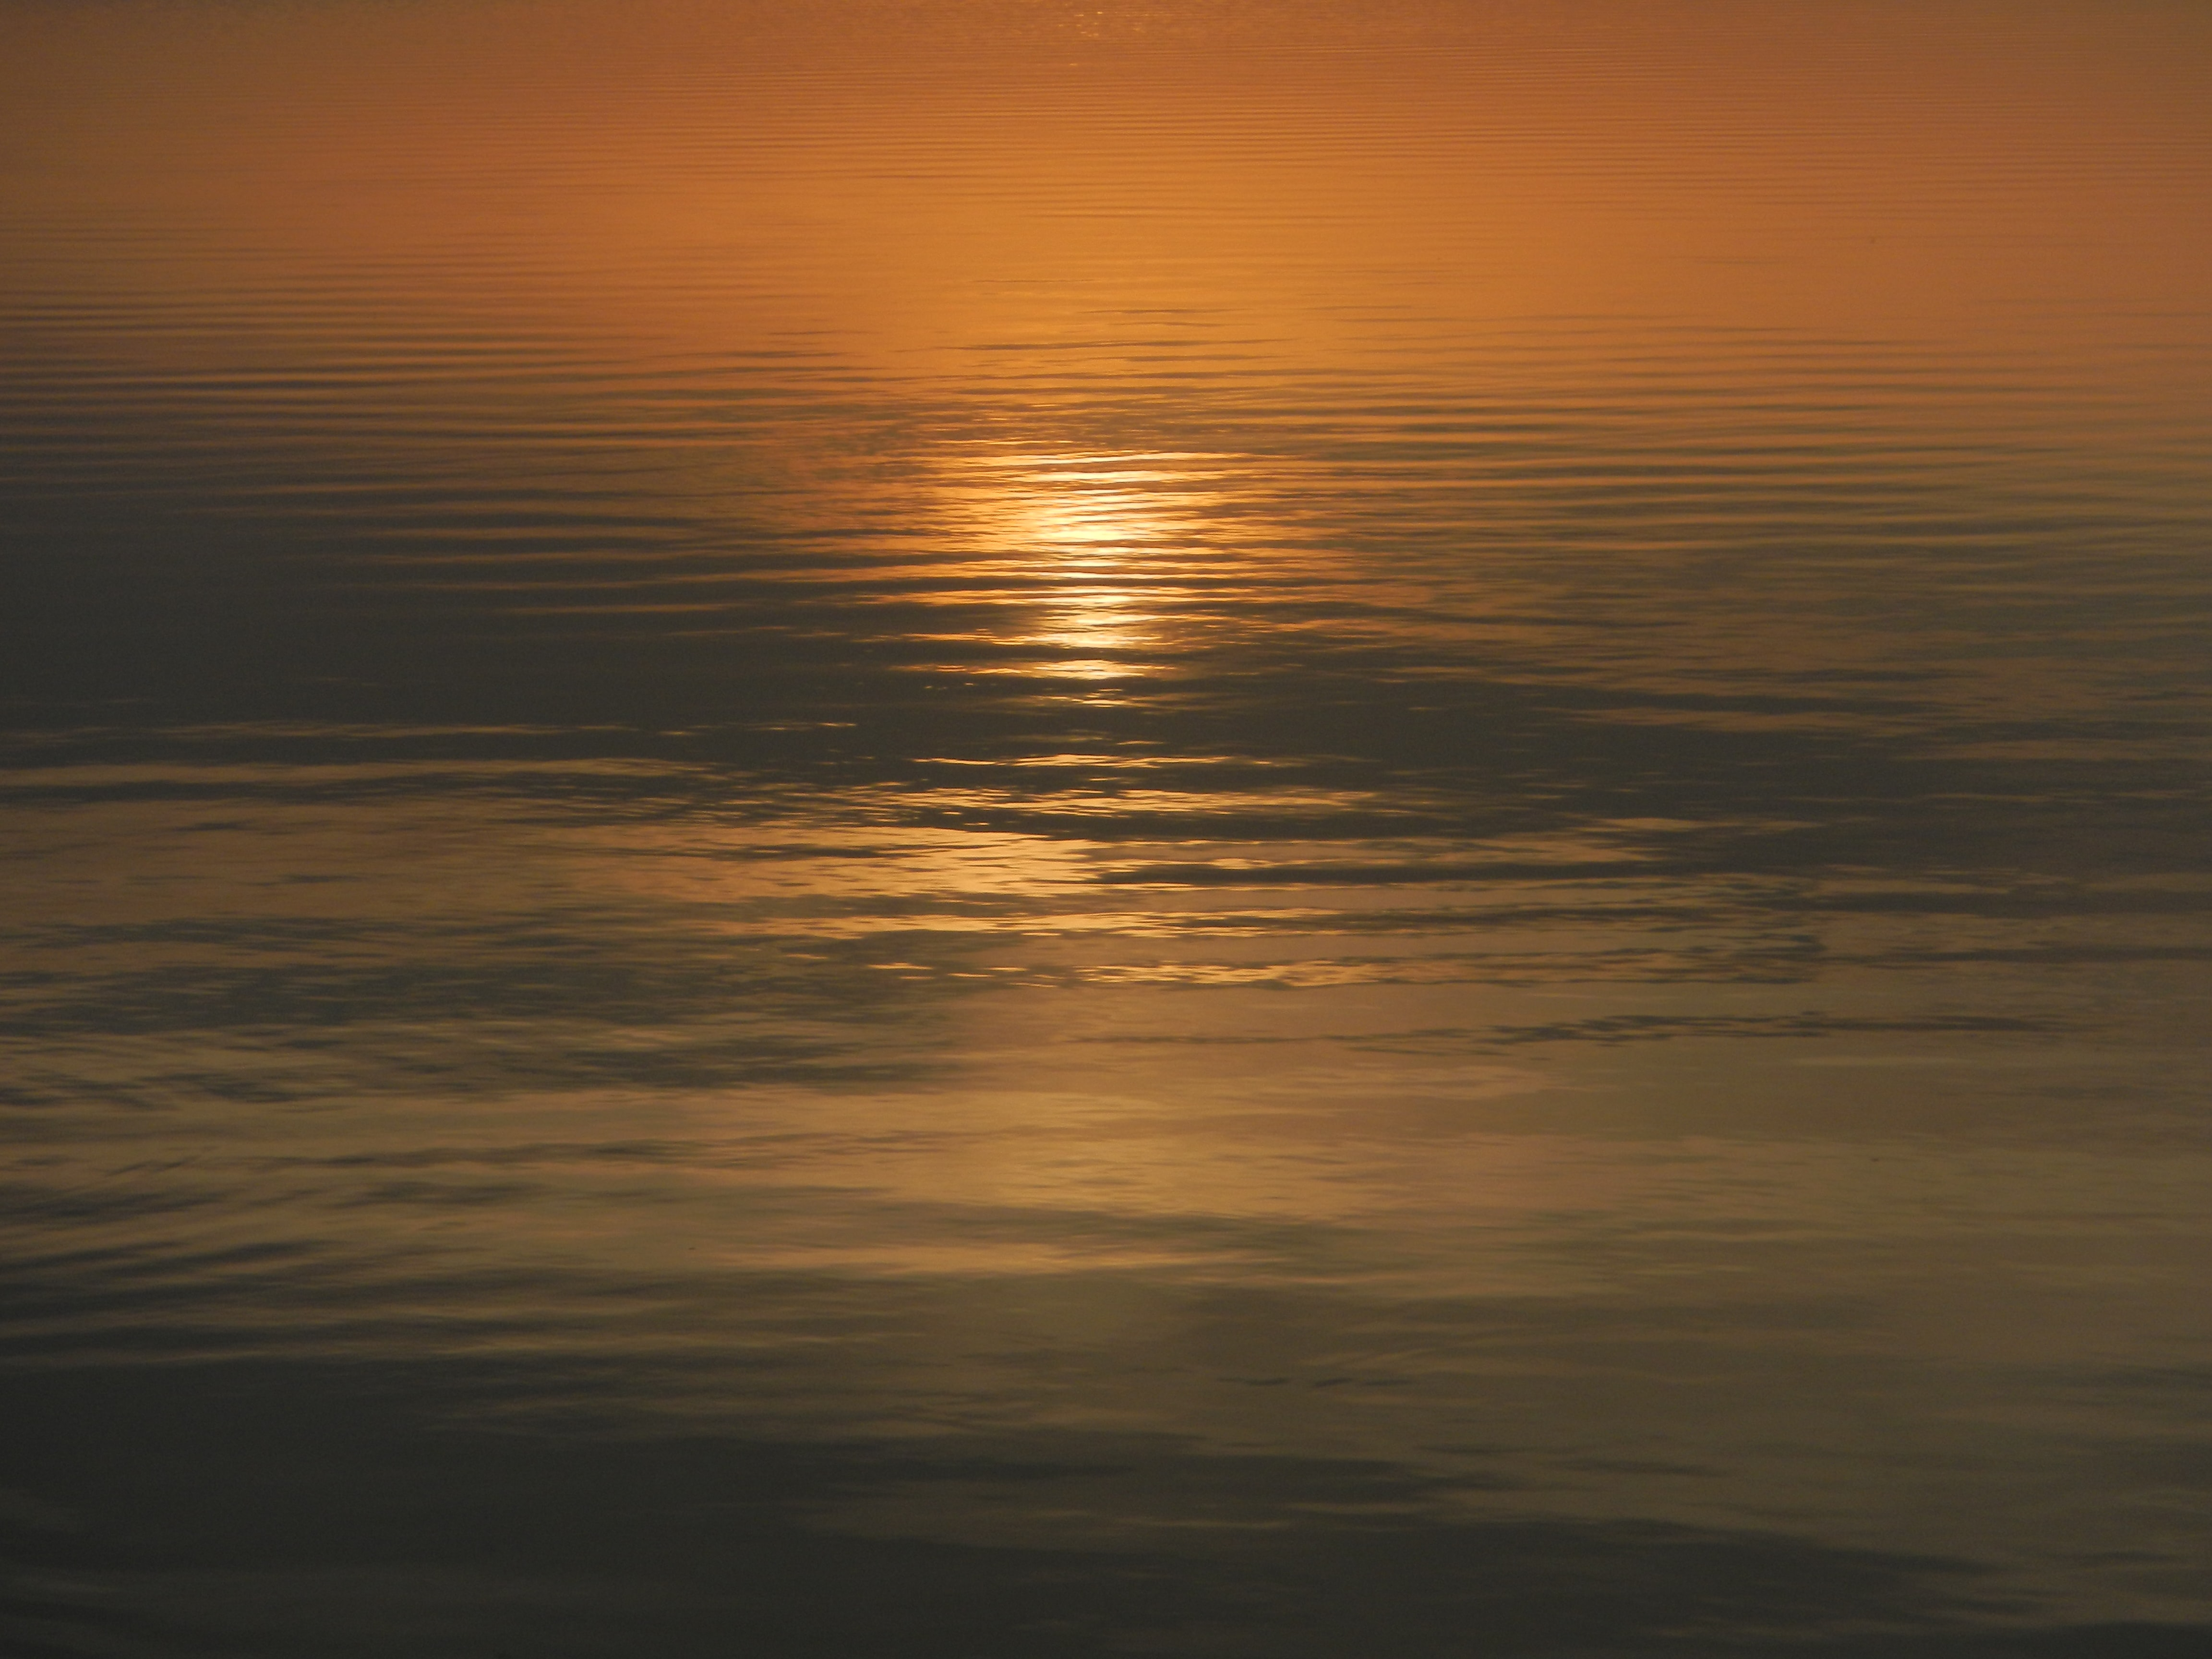 Setting sun reflected in the surface of the sea